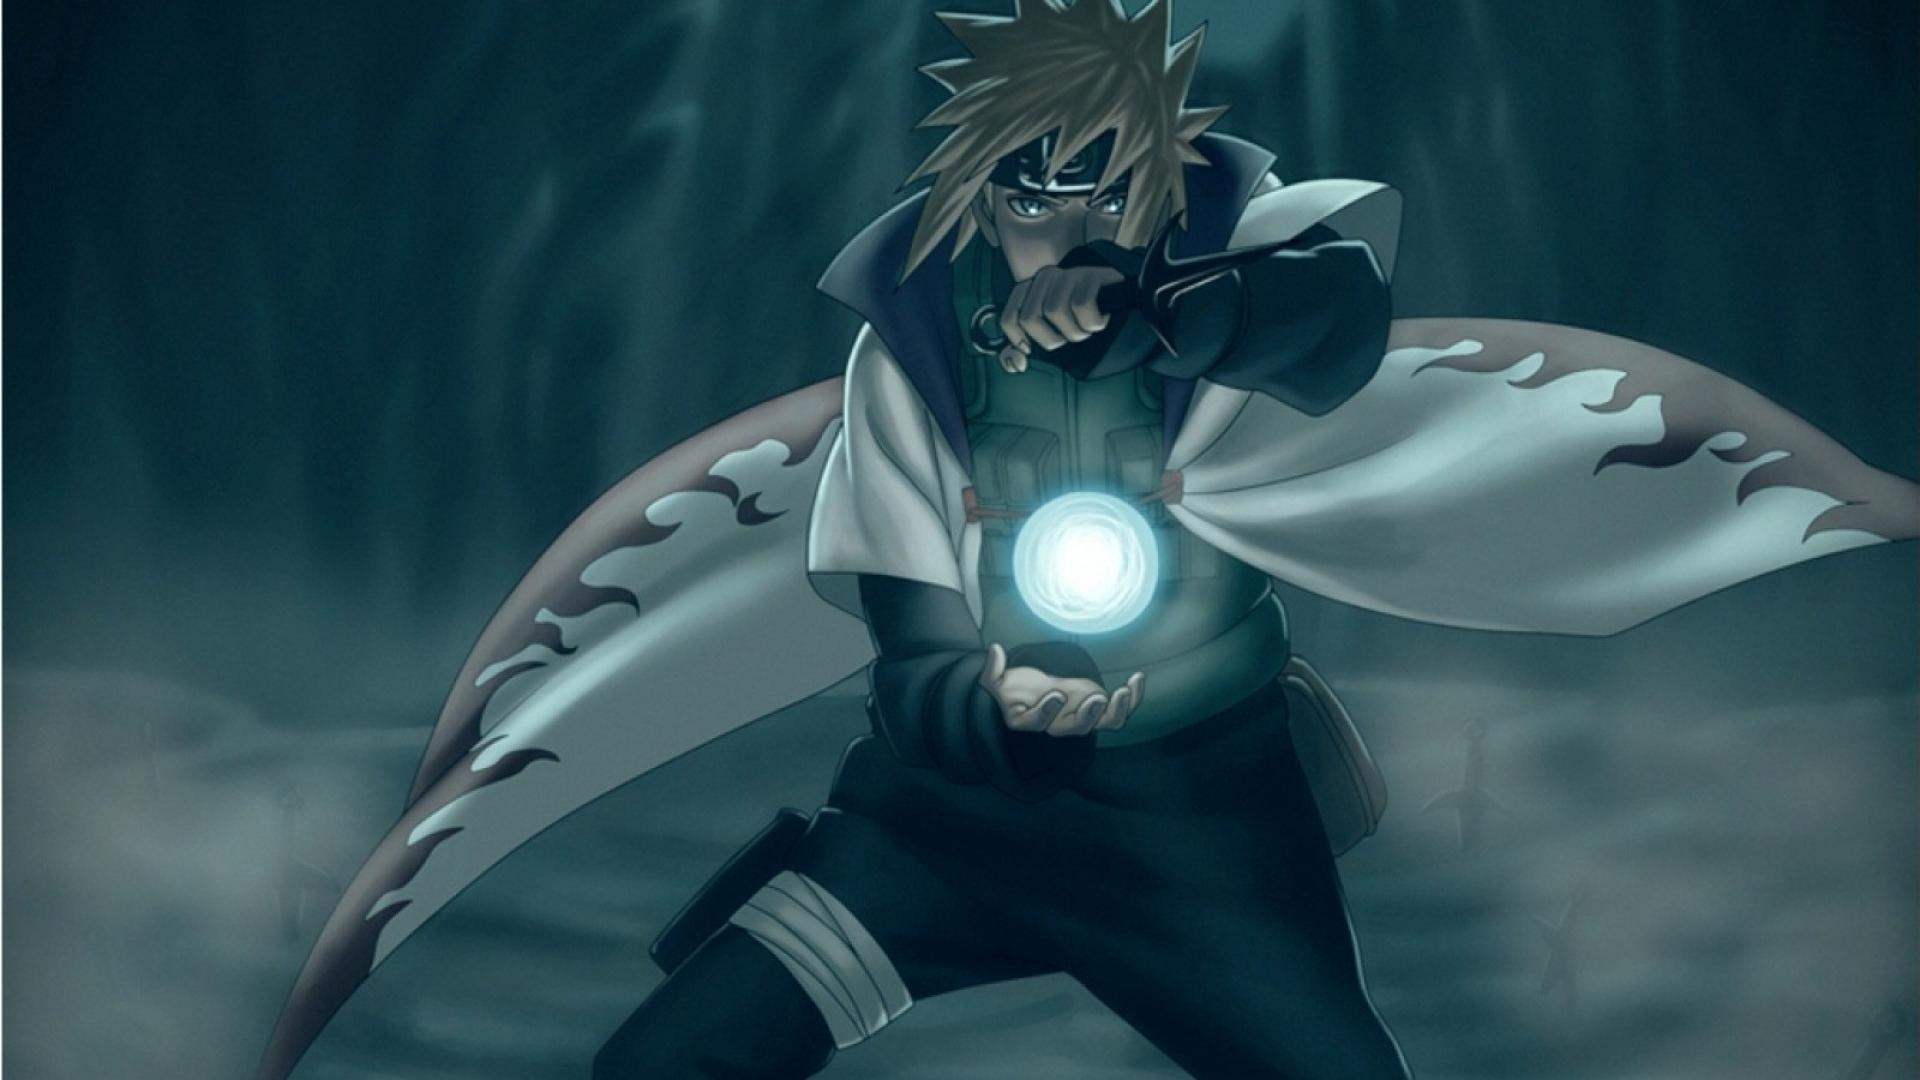 10 Best Naruto Shippuden Hd Wallpapers Full Hd 1920 1080 For